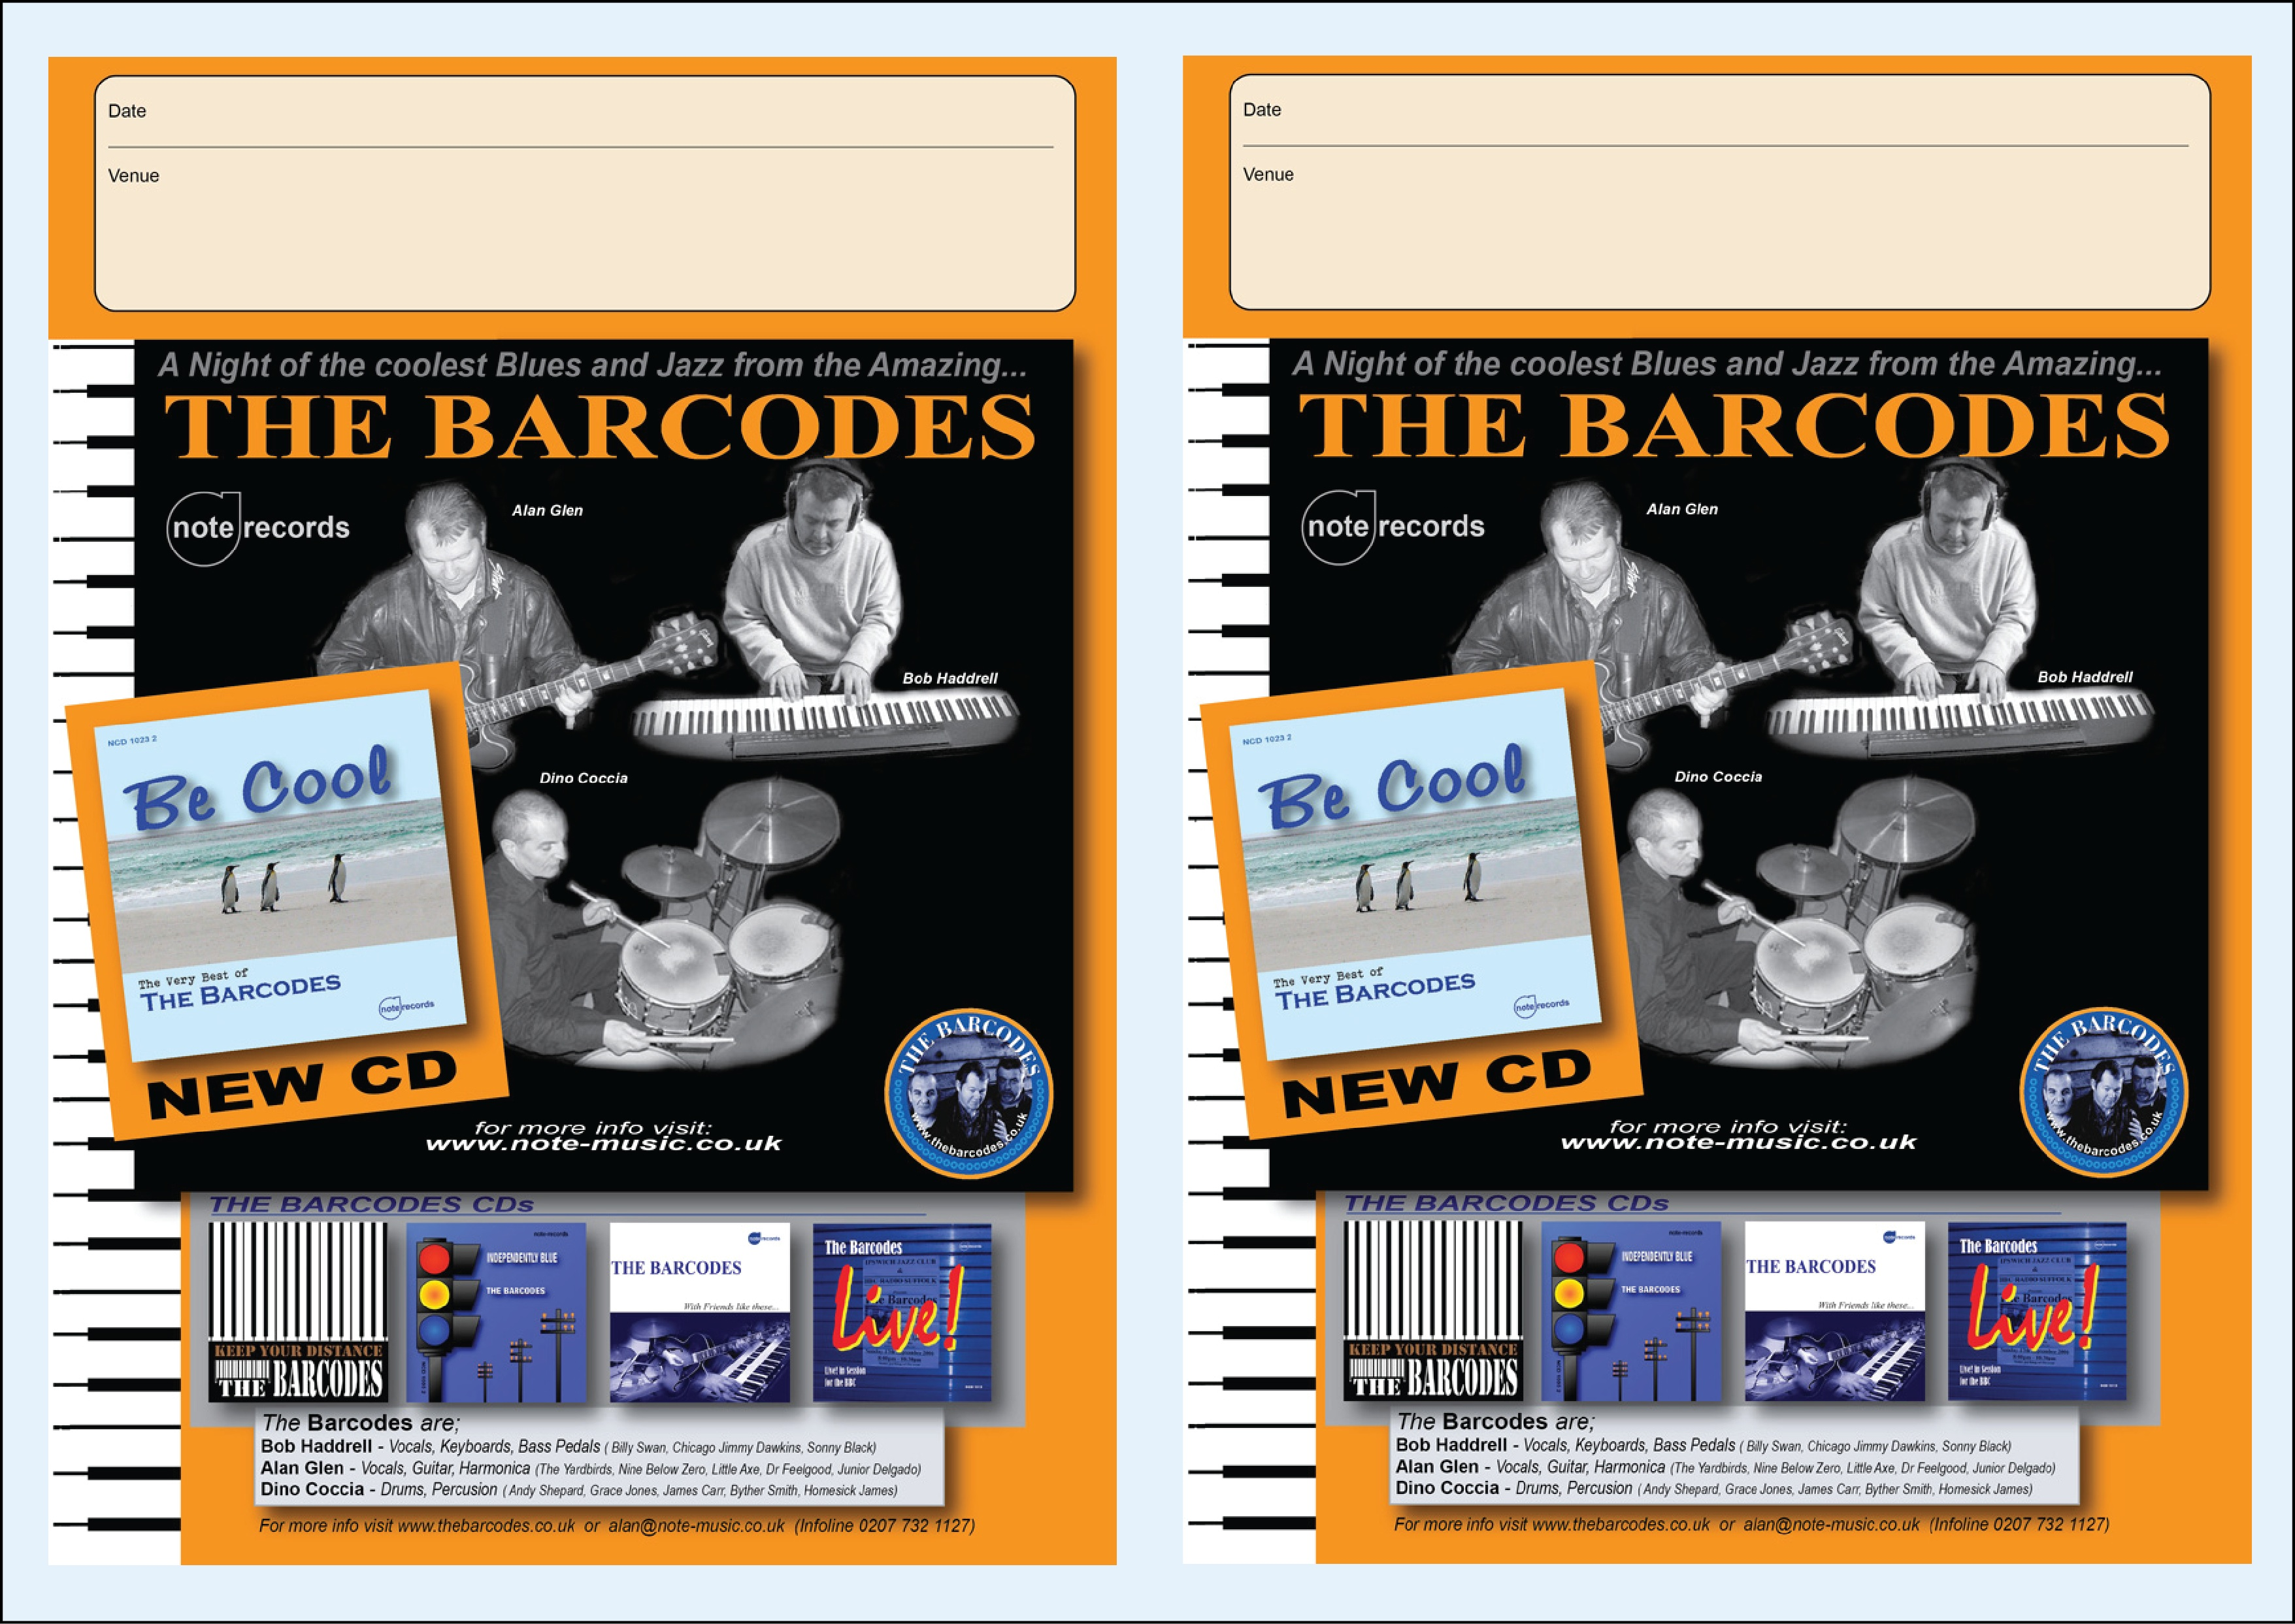 Boarcodes Flyer